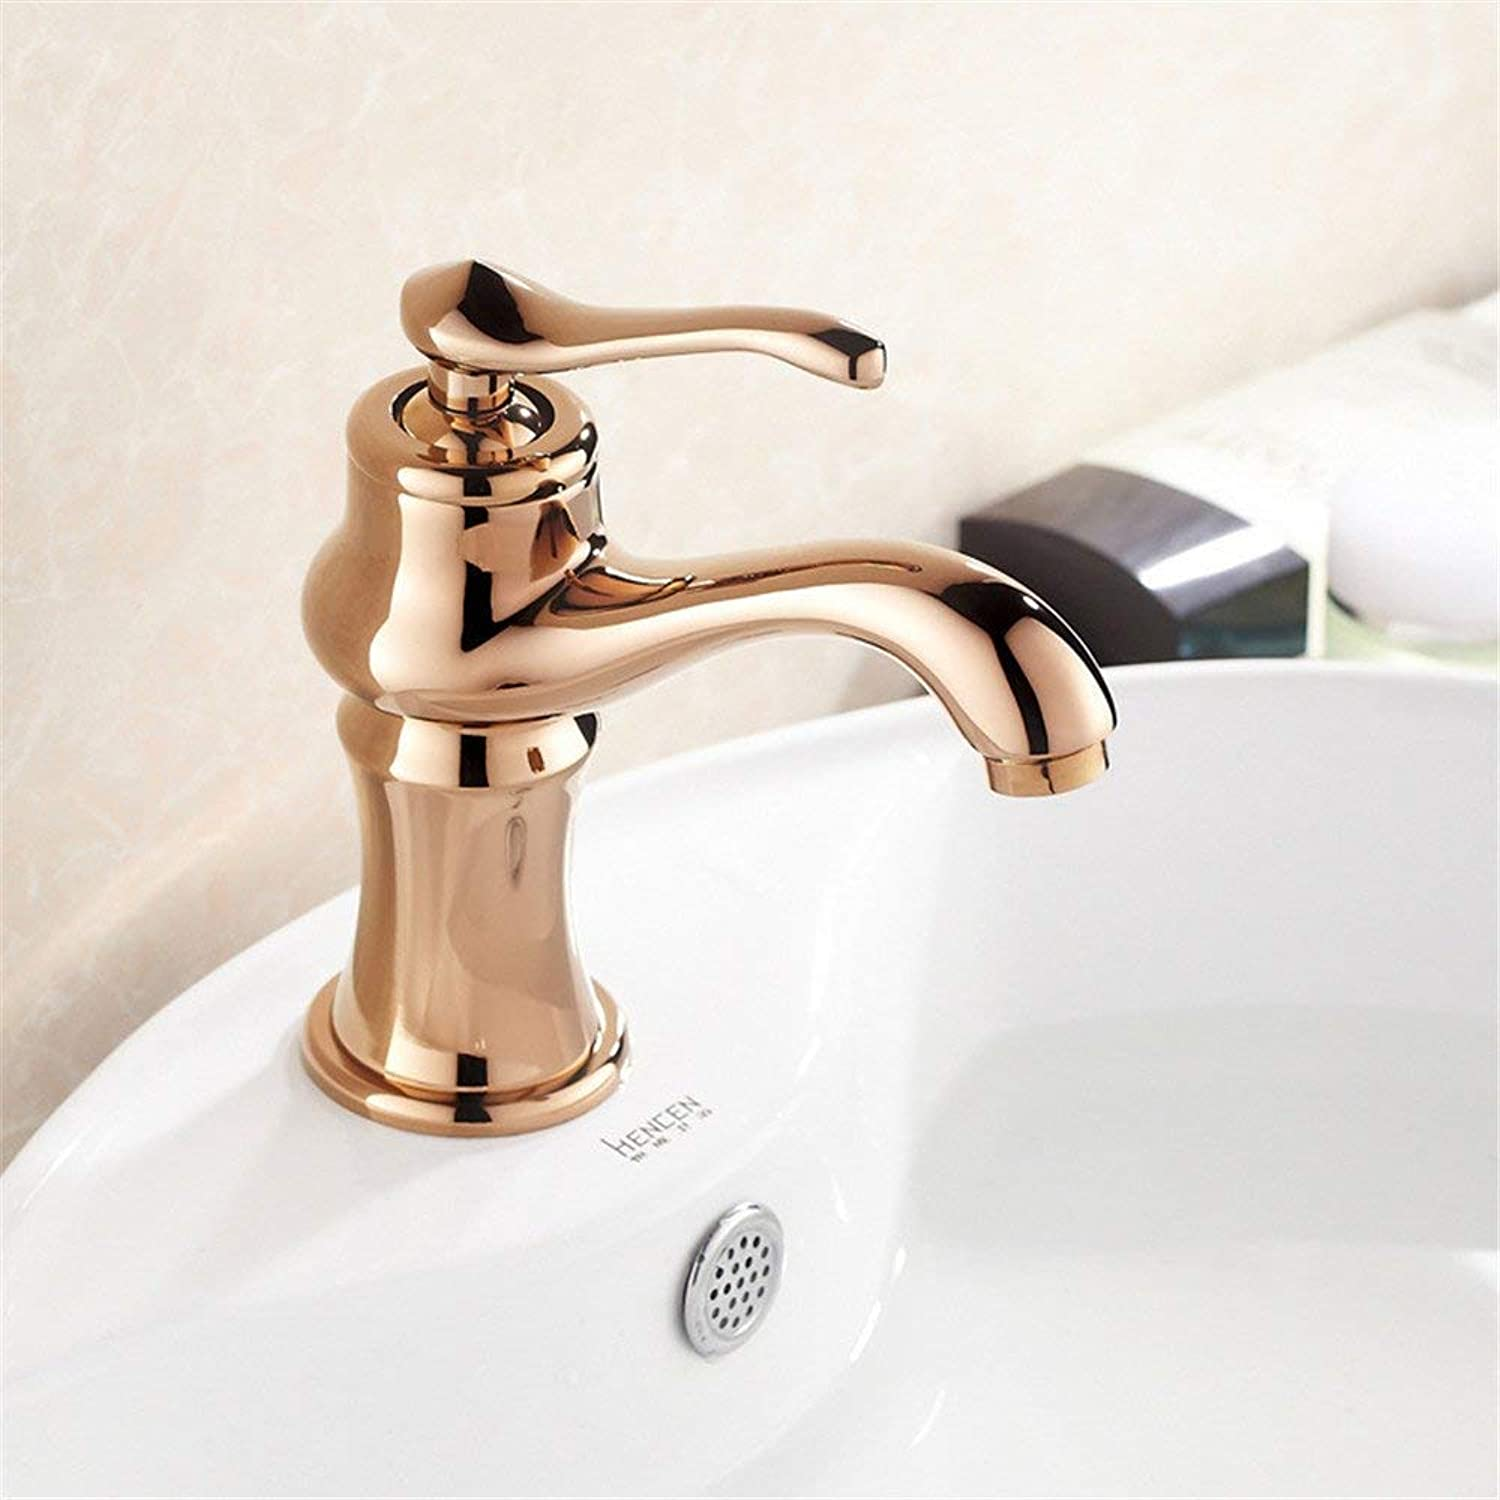 Oudan European Basin Faucet Hot and Cold Faucet Washbasin Bathroom Cabinet gold Faucet pink gold (color   -, Size   -)